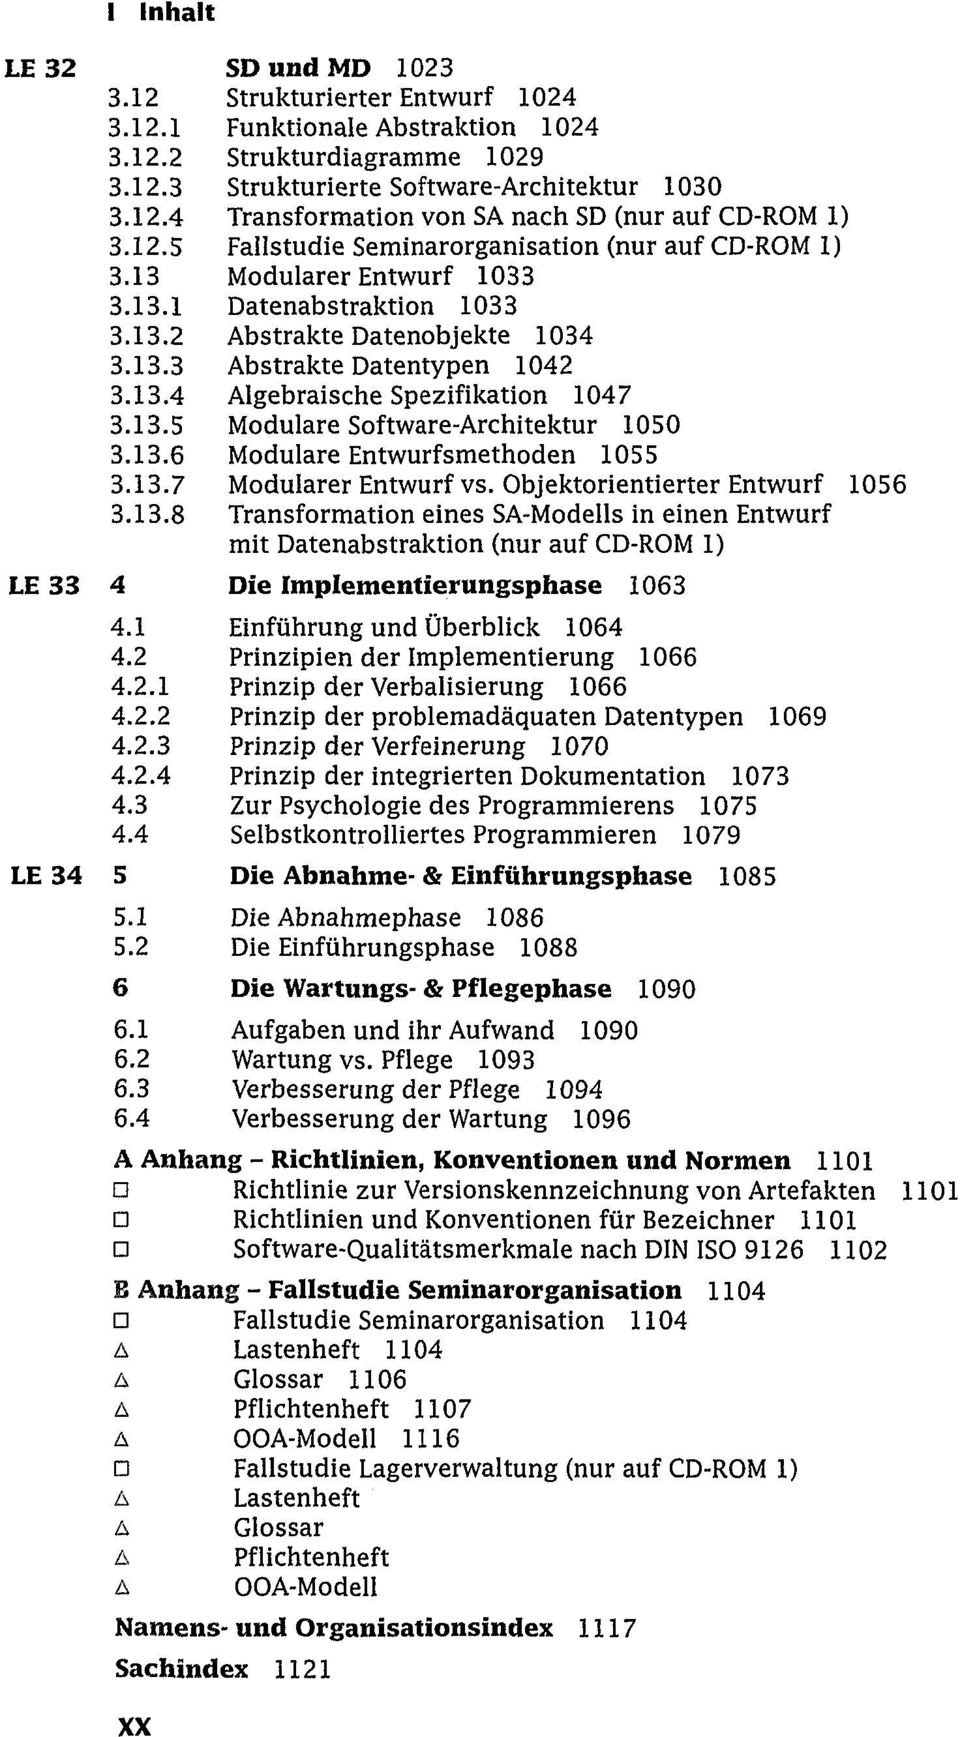 Seminarorganisation (nur auf CD-ROM 1) Modularer Entwurf 1033 Datenabstraktion 1033 Abstrakte Datenobjekte 1034 Abstrakte Datentypen 1042 Algebraische Spezifikation 1047 Modulare Software-Architektur